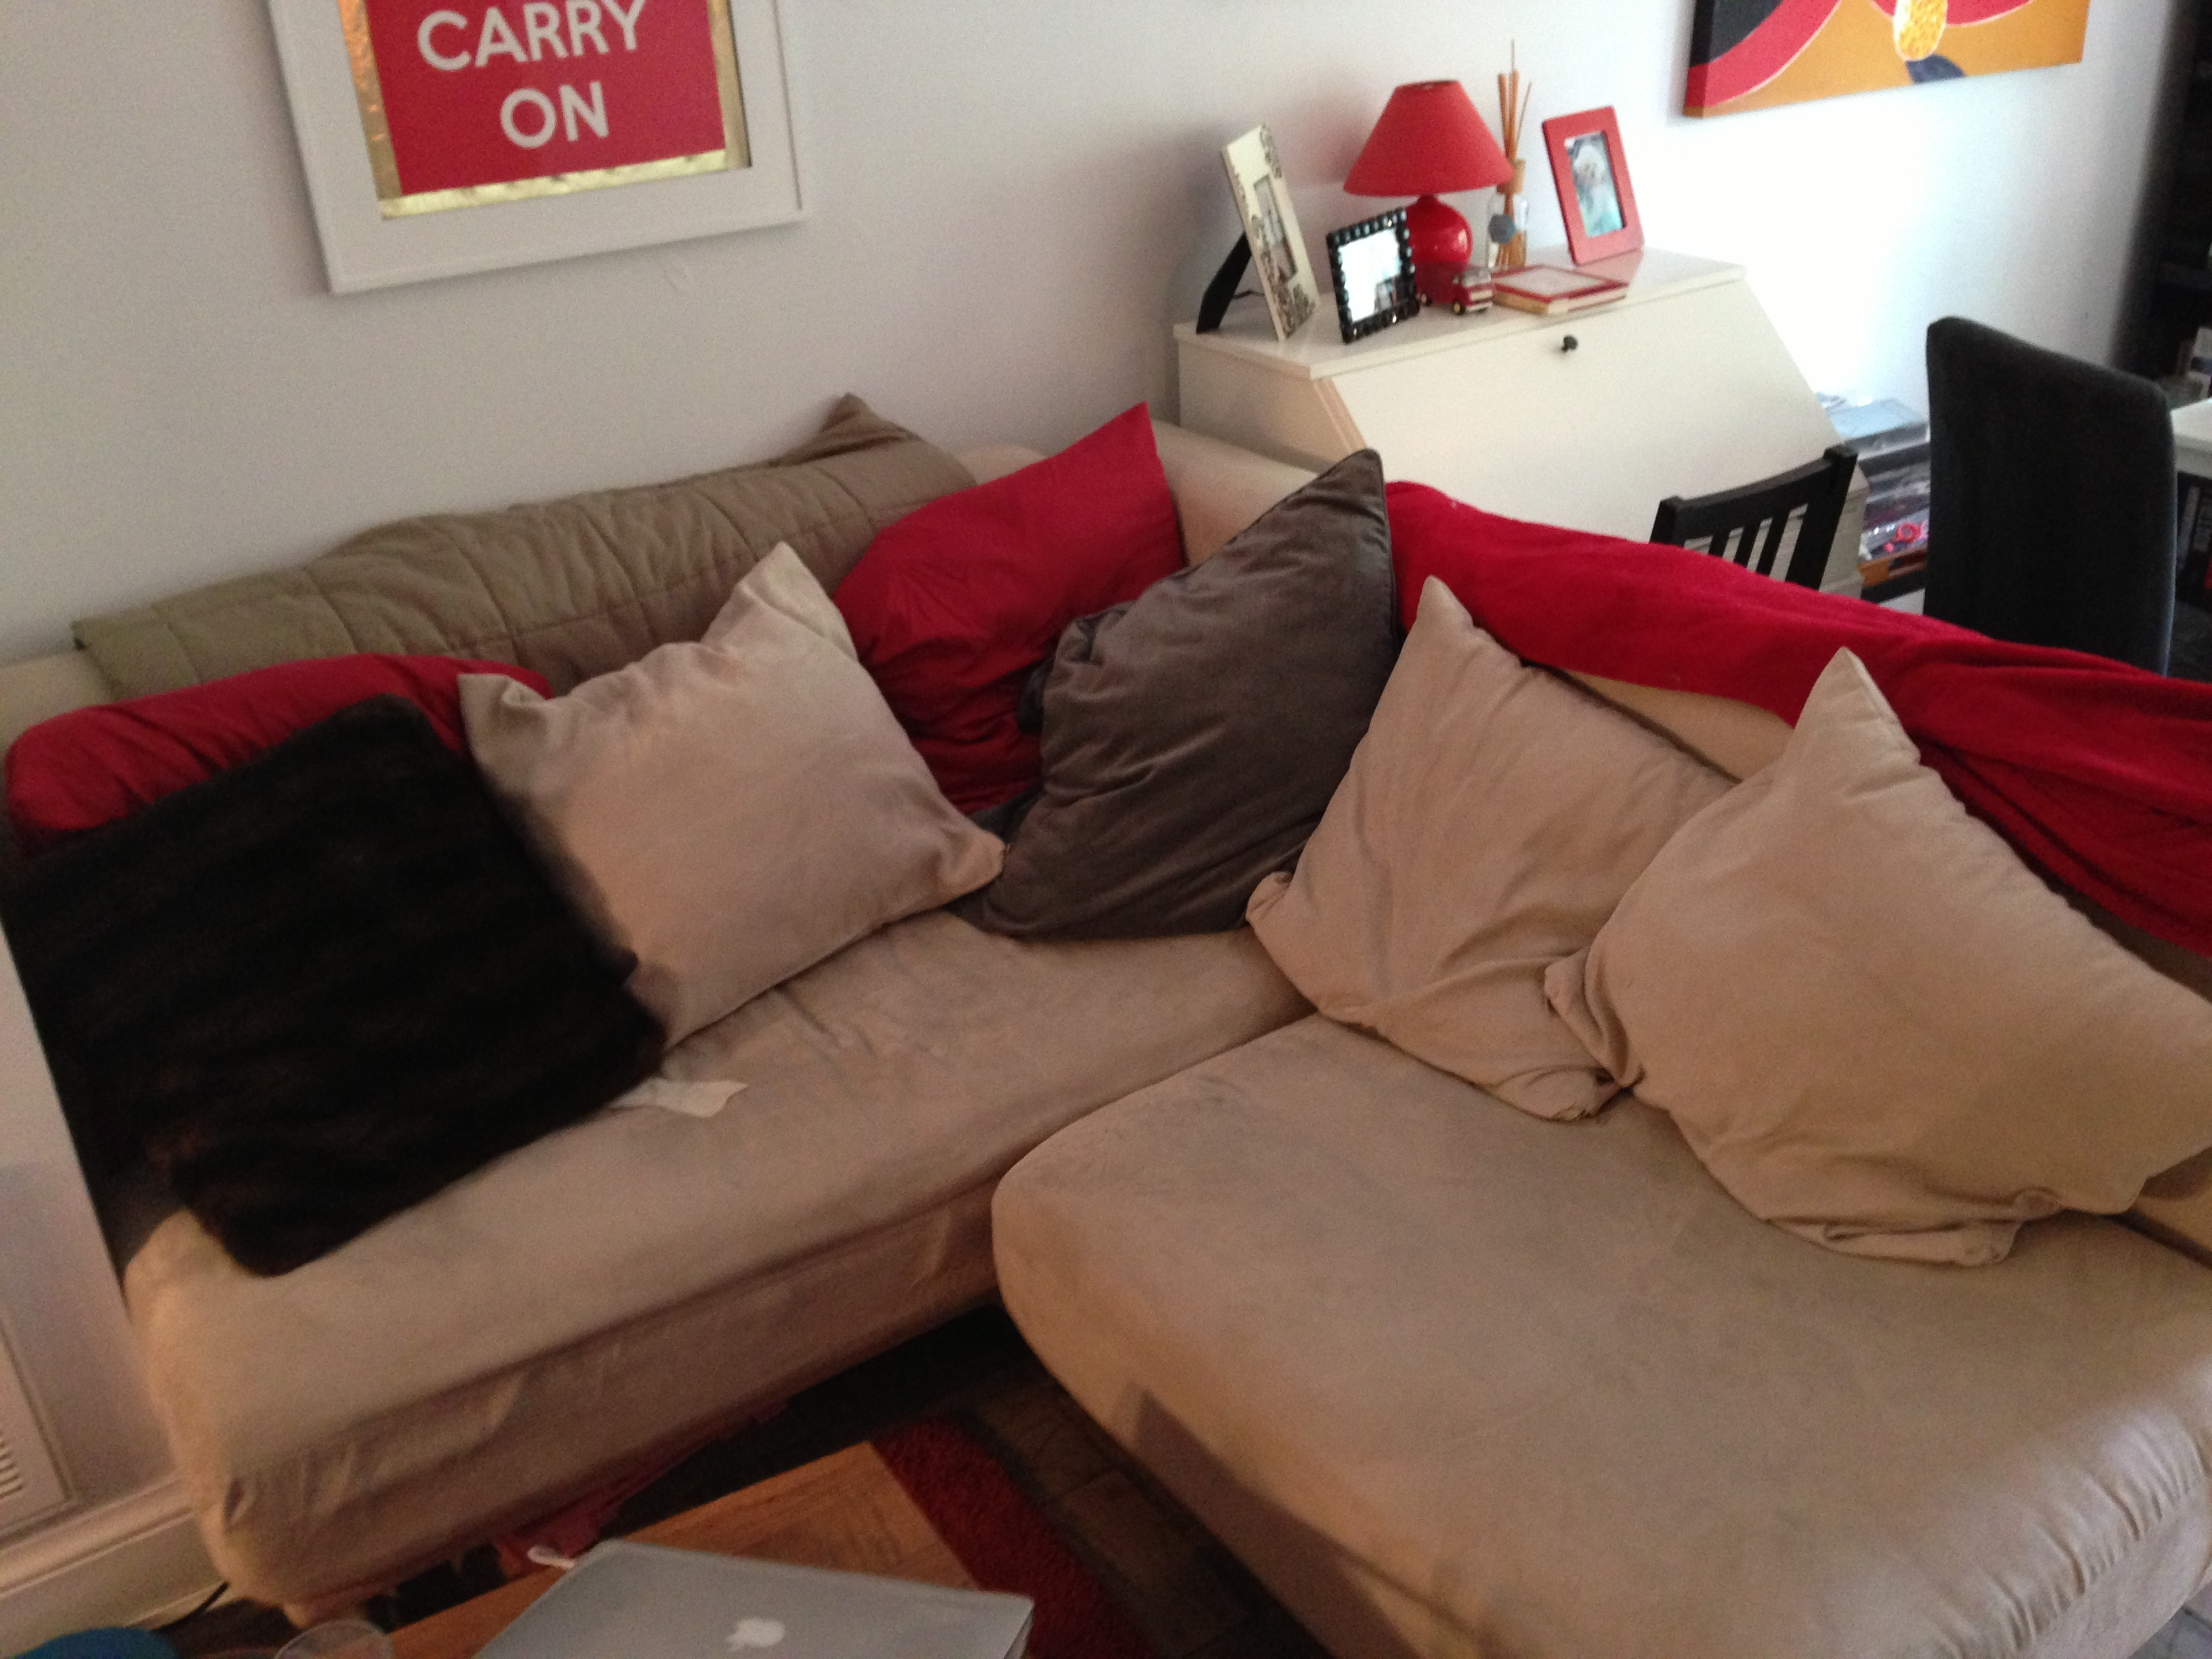 Sectional Sofa With Ottoman – $100 | Gently Used Furniture For Sale With Regard To Used Sectional Sofas (Image 4 of 10)